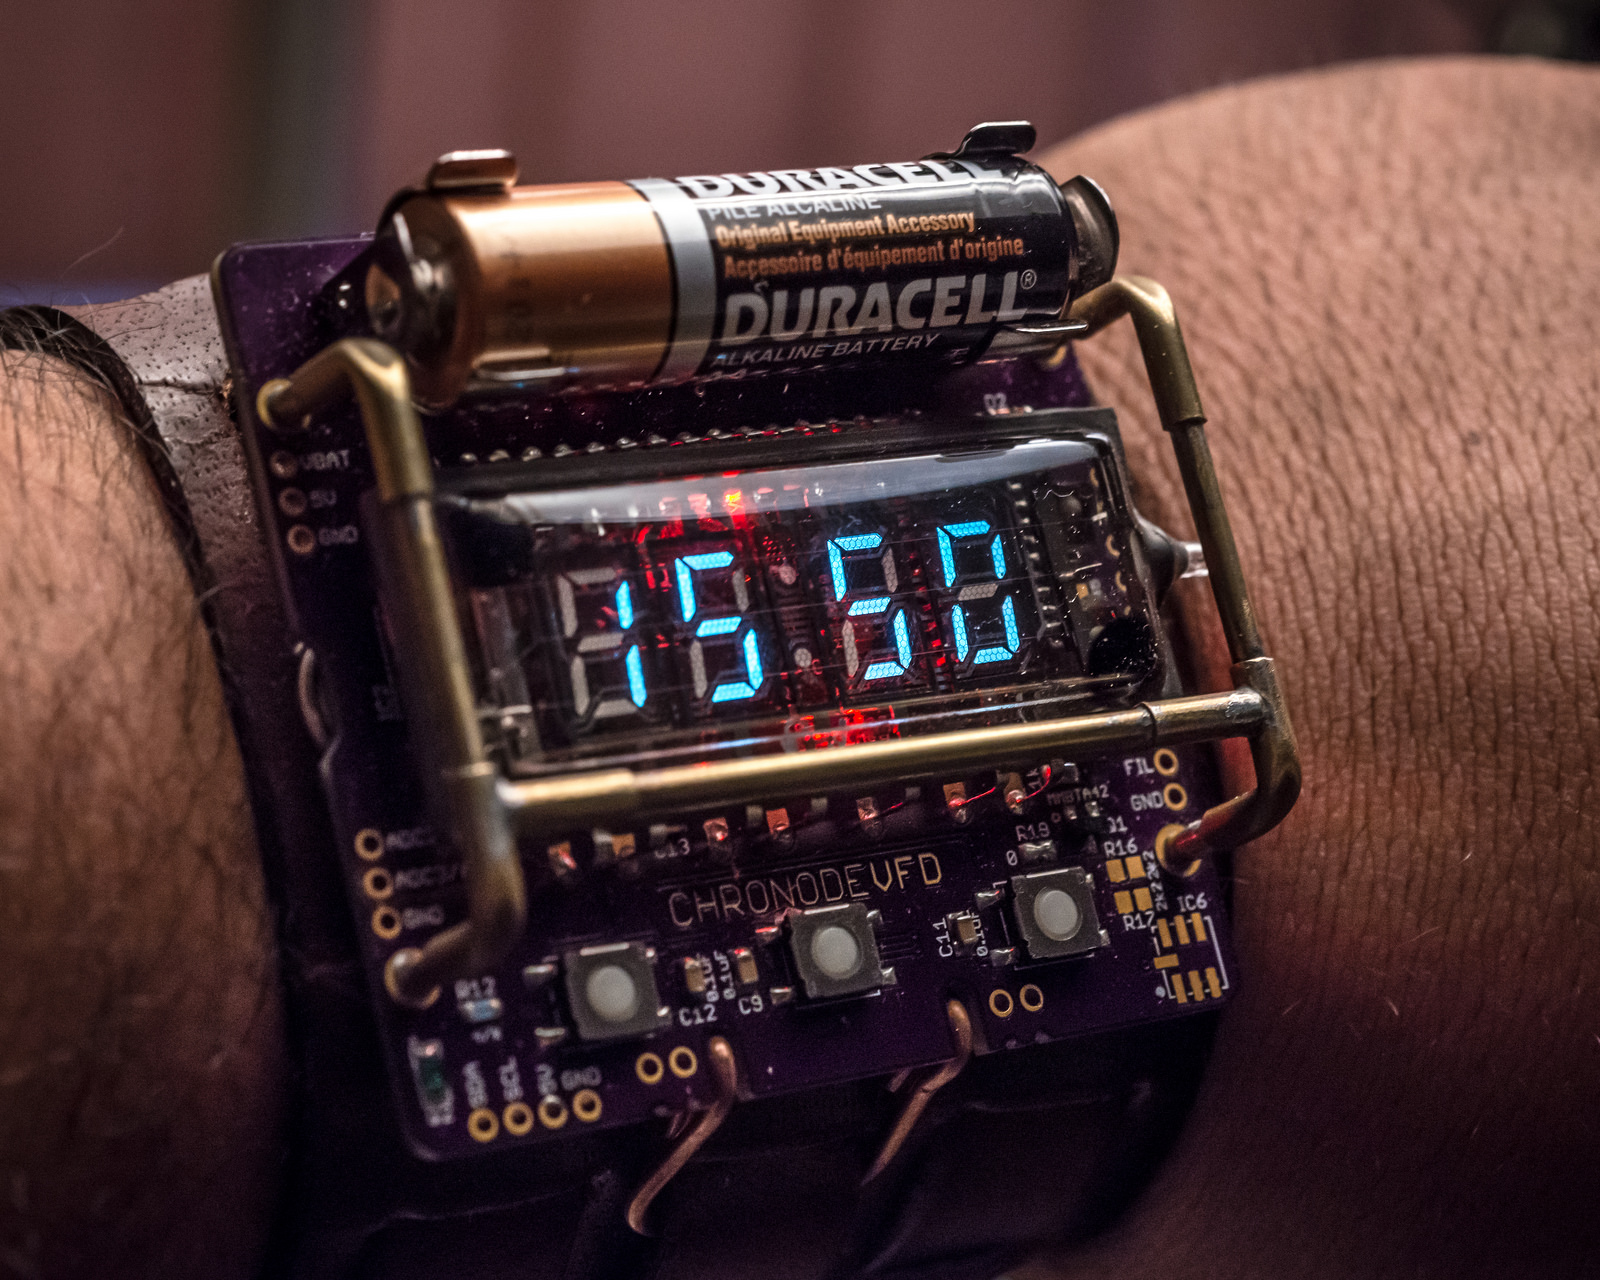 Cyber Steampunk Watch Built Around An Ex Soviet IVL2 7 5 VFD Display Tube